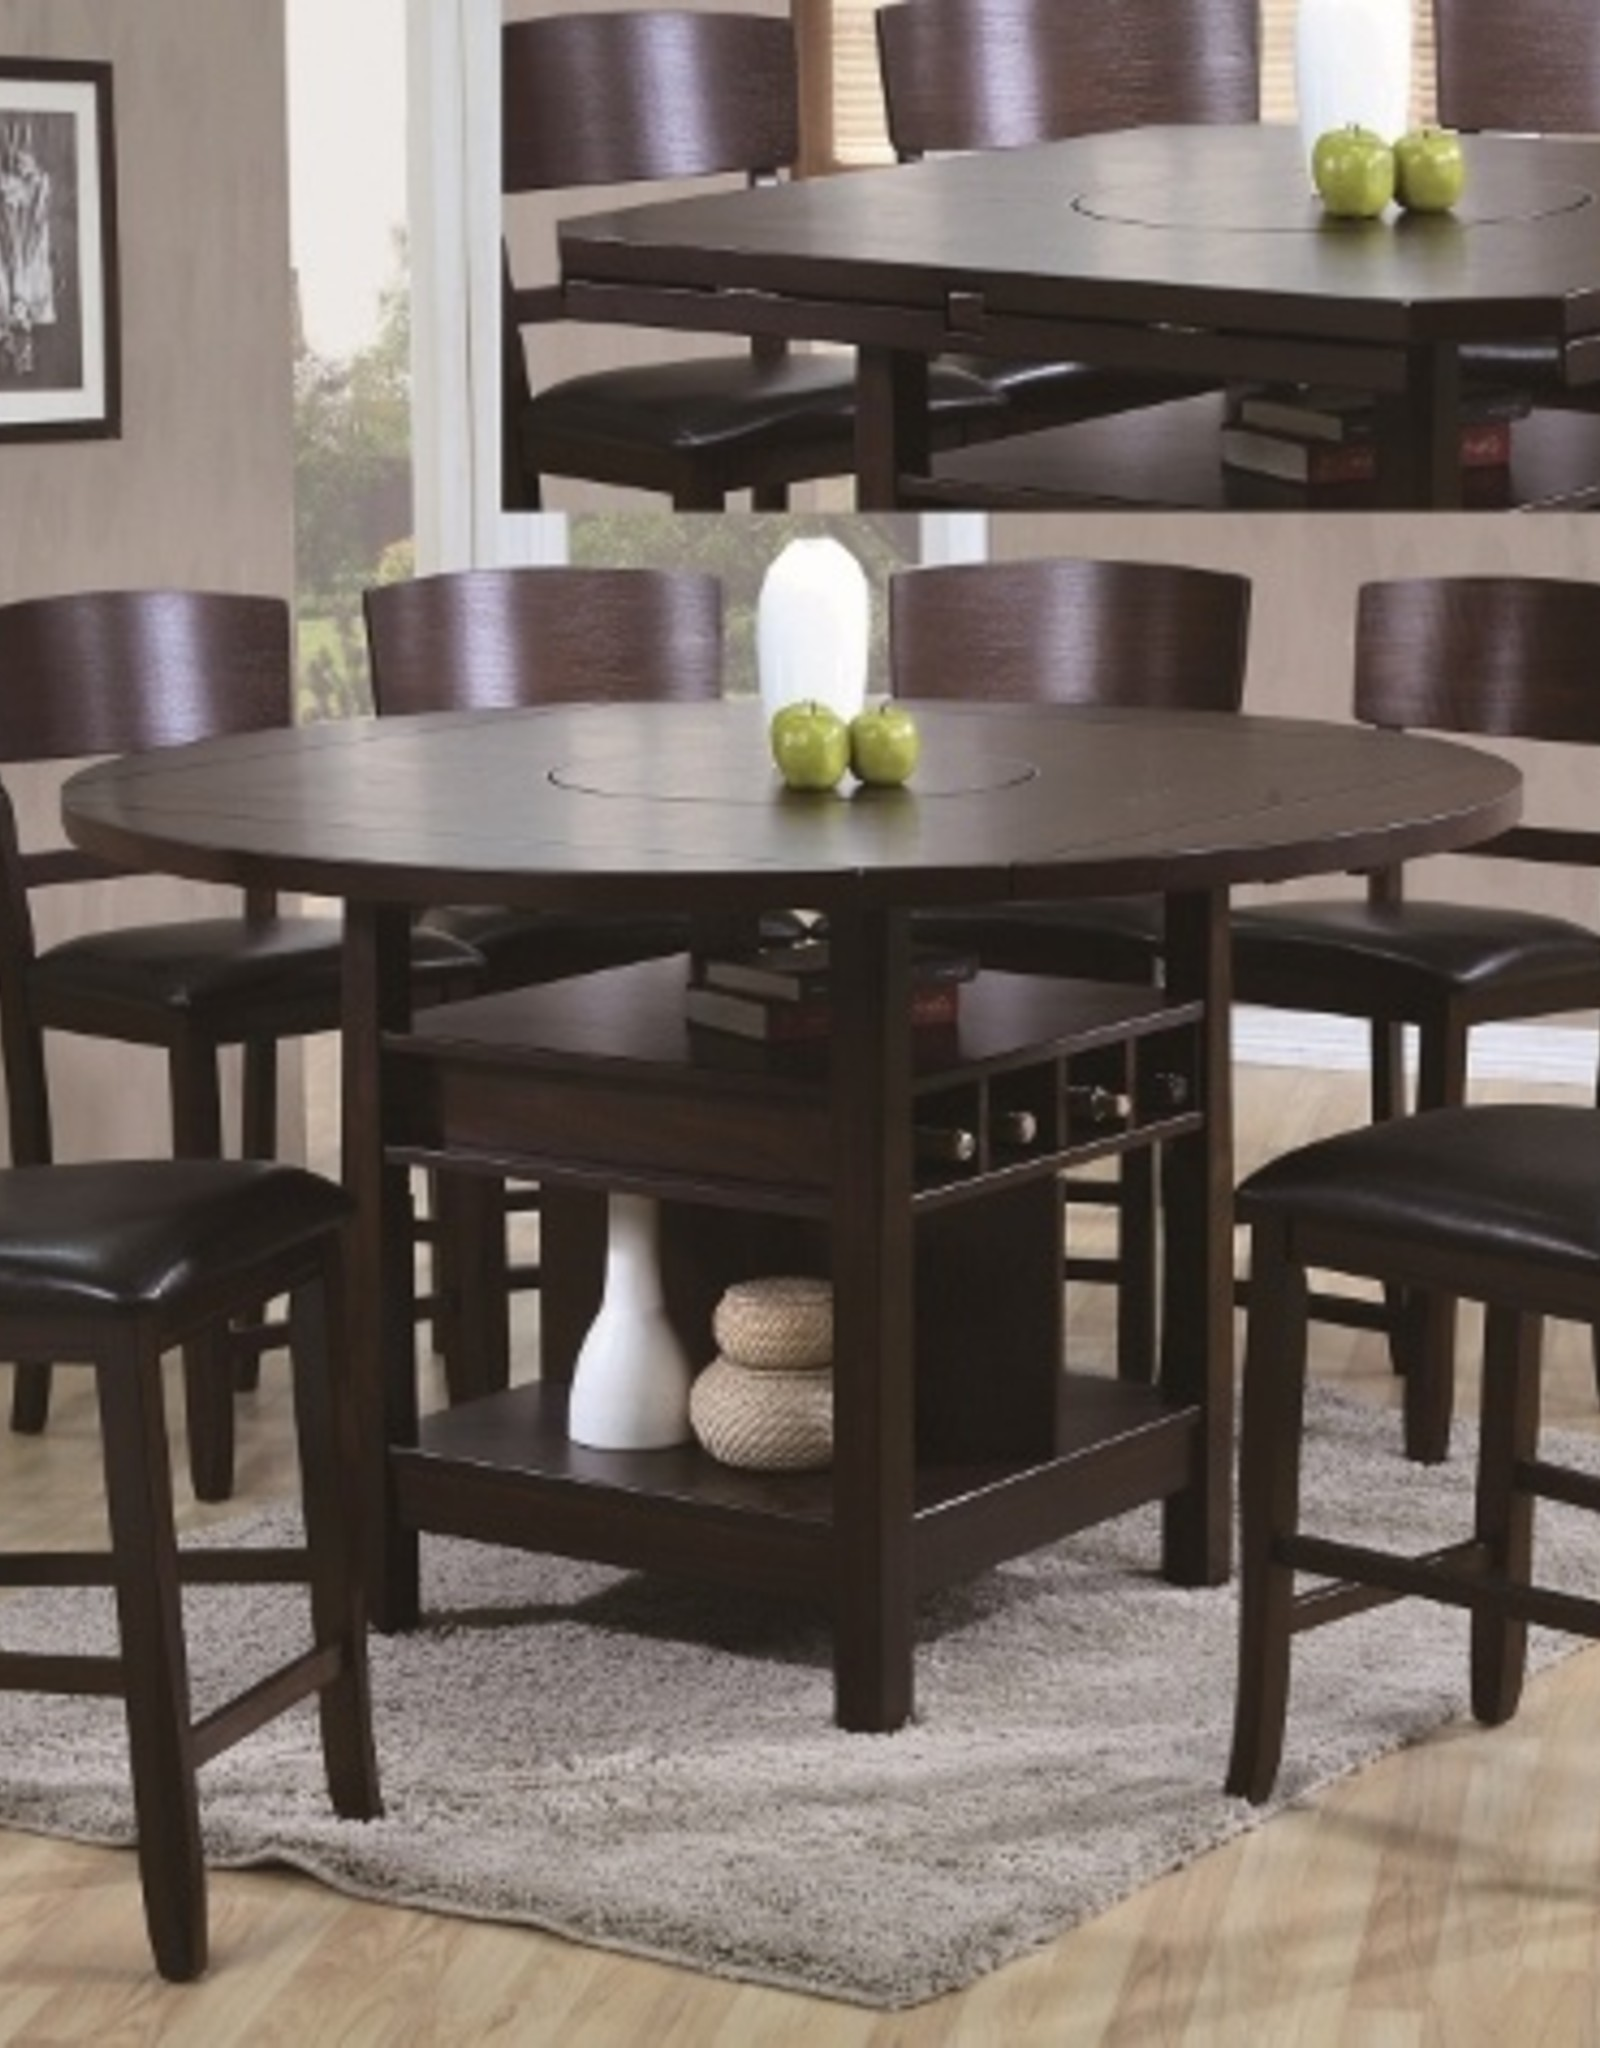 Crownmark Conner counter height table with 4 chairs